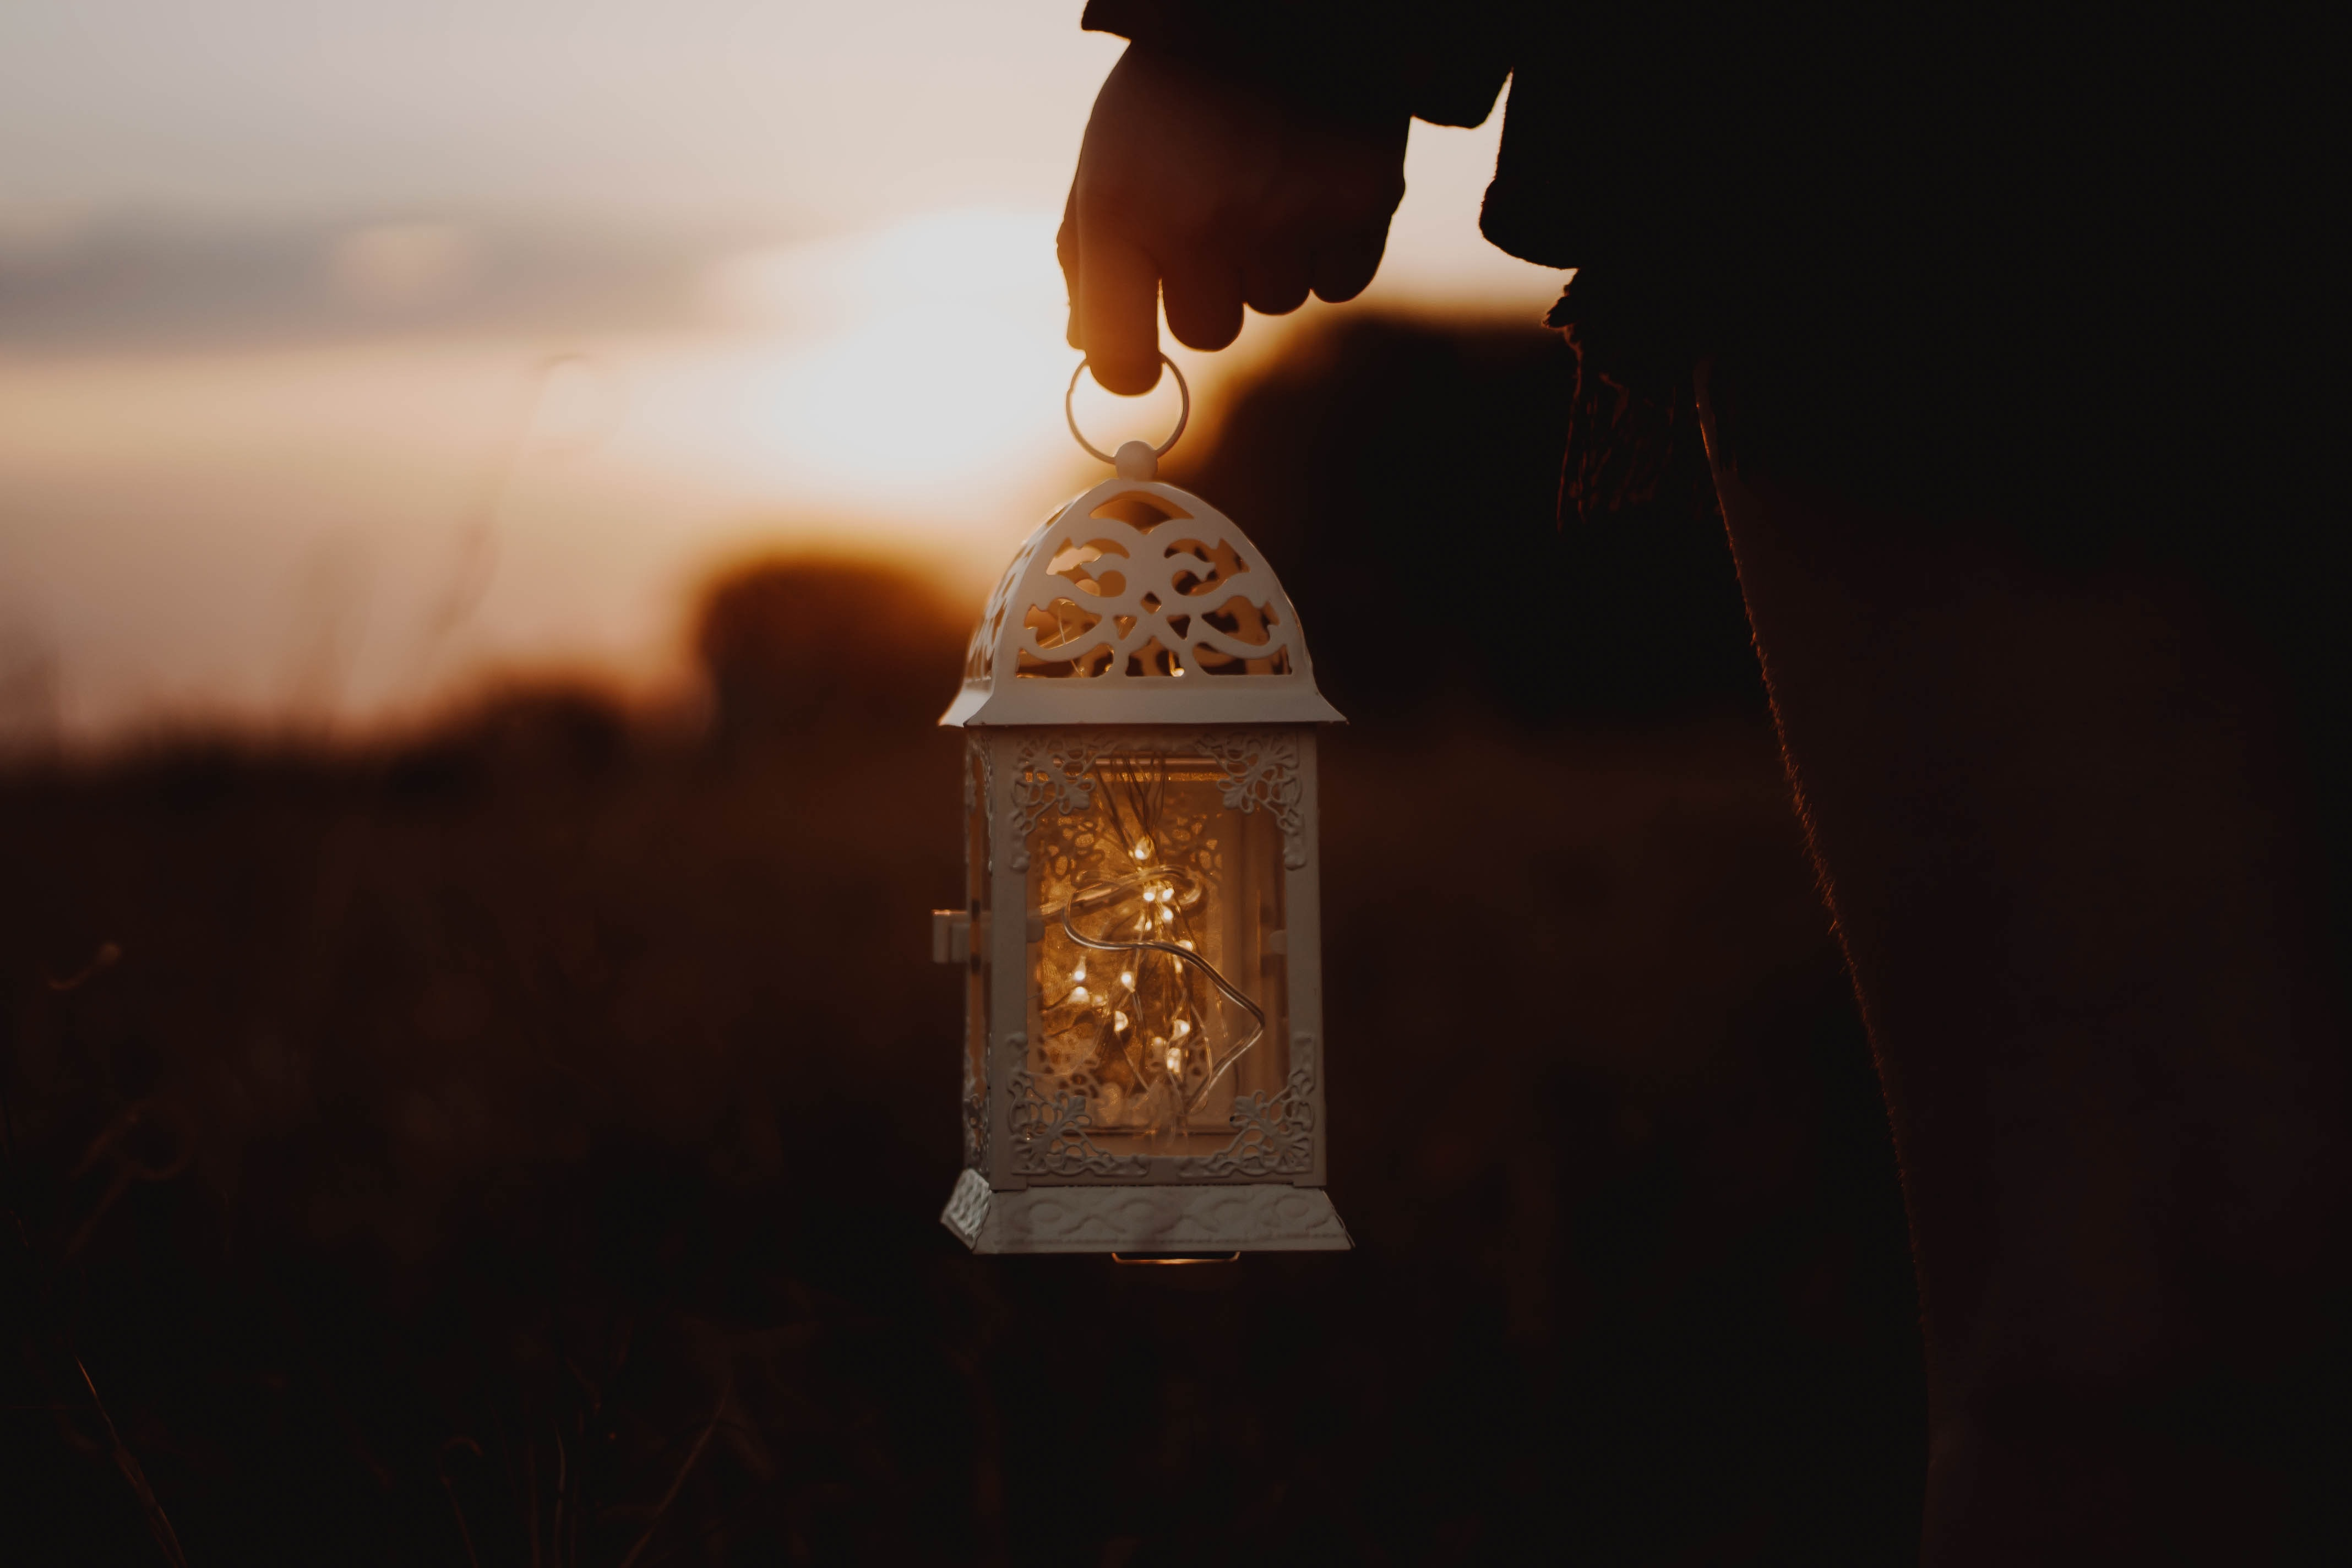 A Light at Hogwarts   It was early into the evening when Hagrid was busy toying with some last minutes things to tidy up before the night was through.     He had a lot to do before the next school day began. He lit his lantern and walked outside.  a light at hogwarats stories